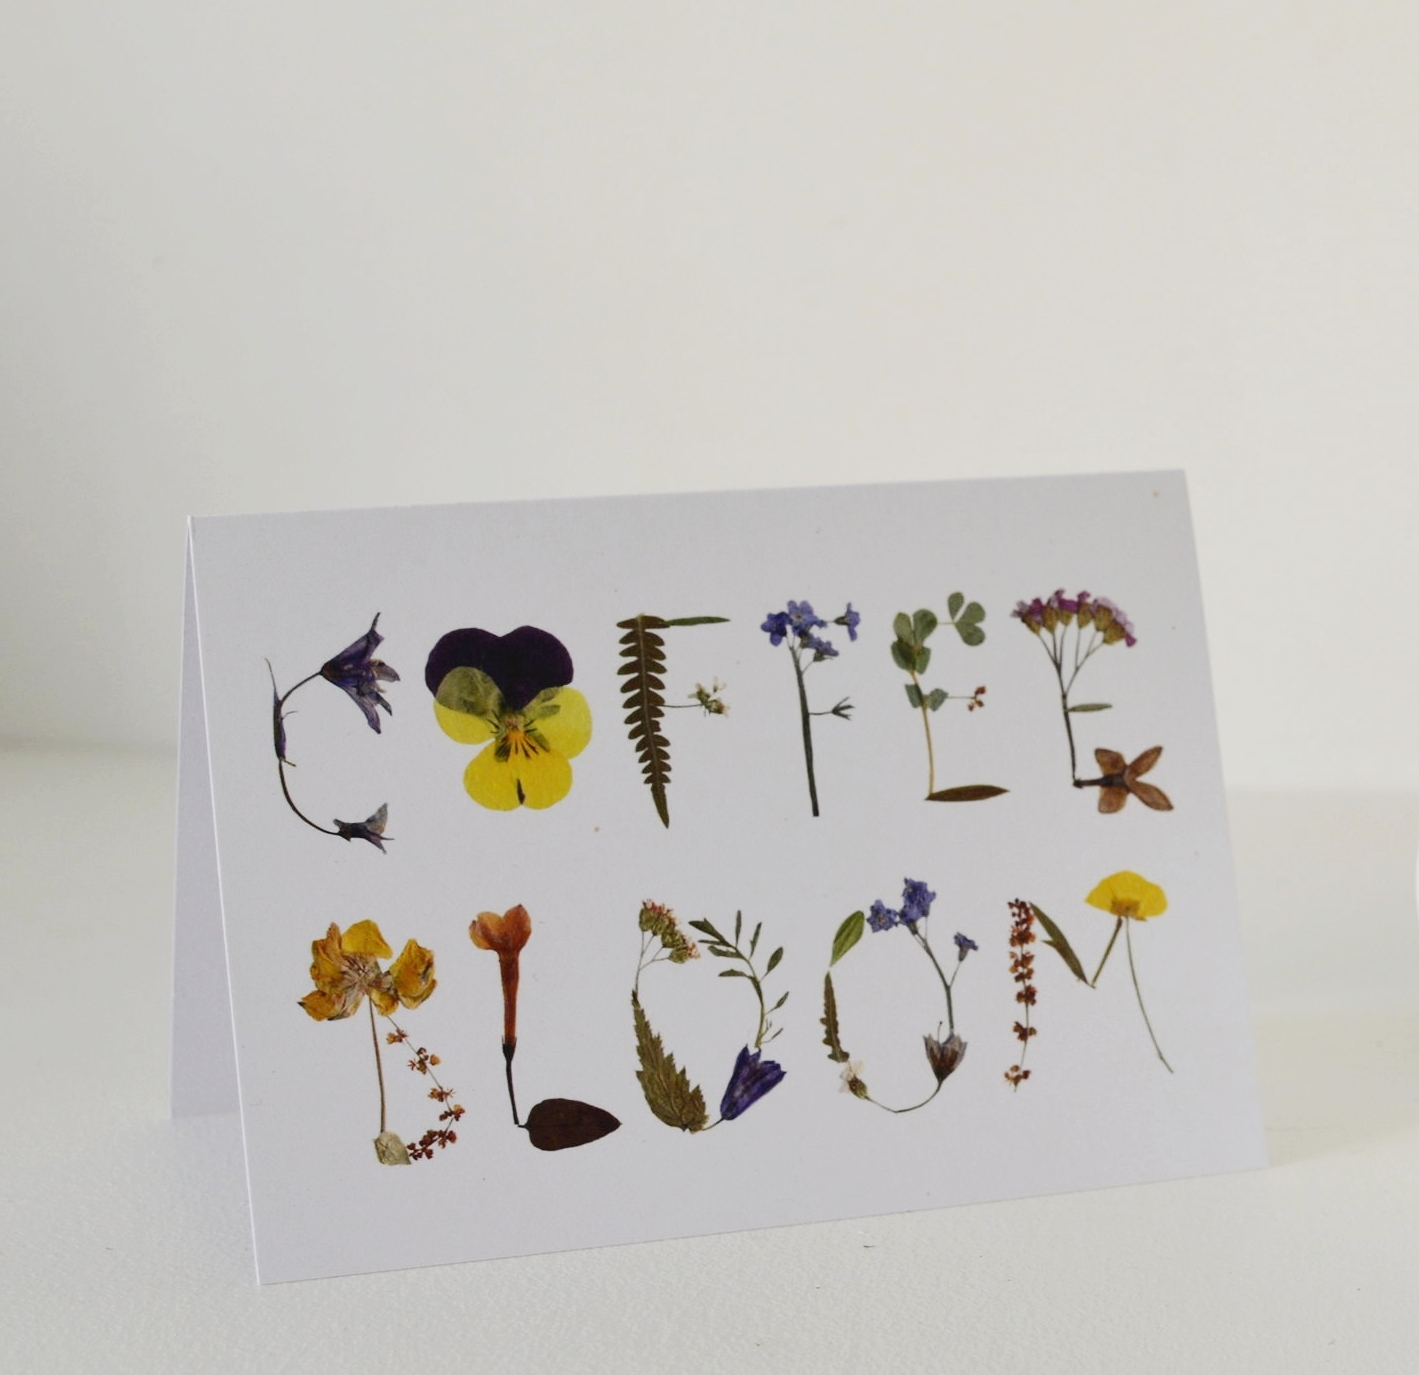 Coffee Bloom Blank Greeting Cards Free Postage In Uk The Girl In